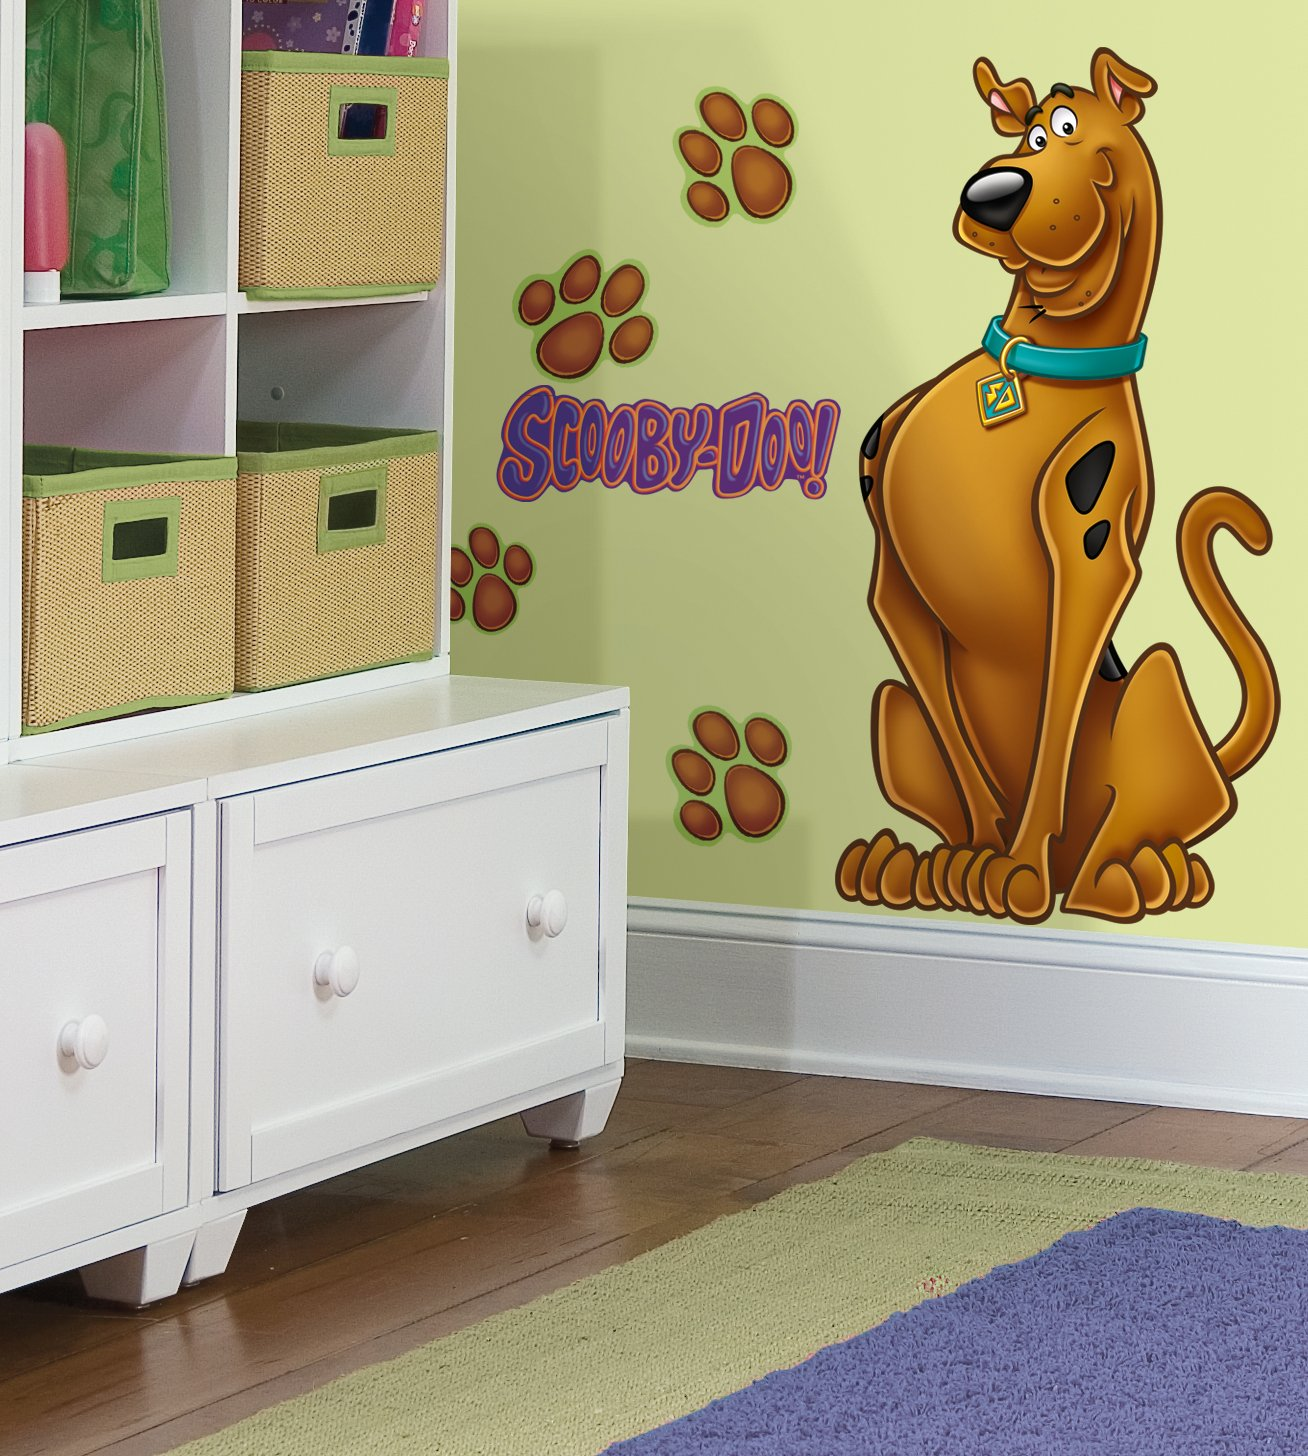 Amazon.com: RoomMates RMK1607GM Scooby Doo Peel U0026 Stick Giant Wall Decal:  Home Improvement